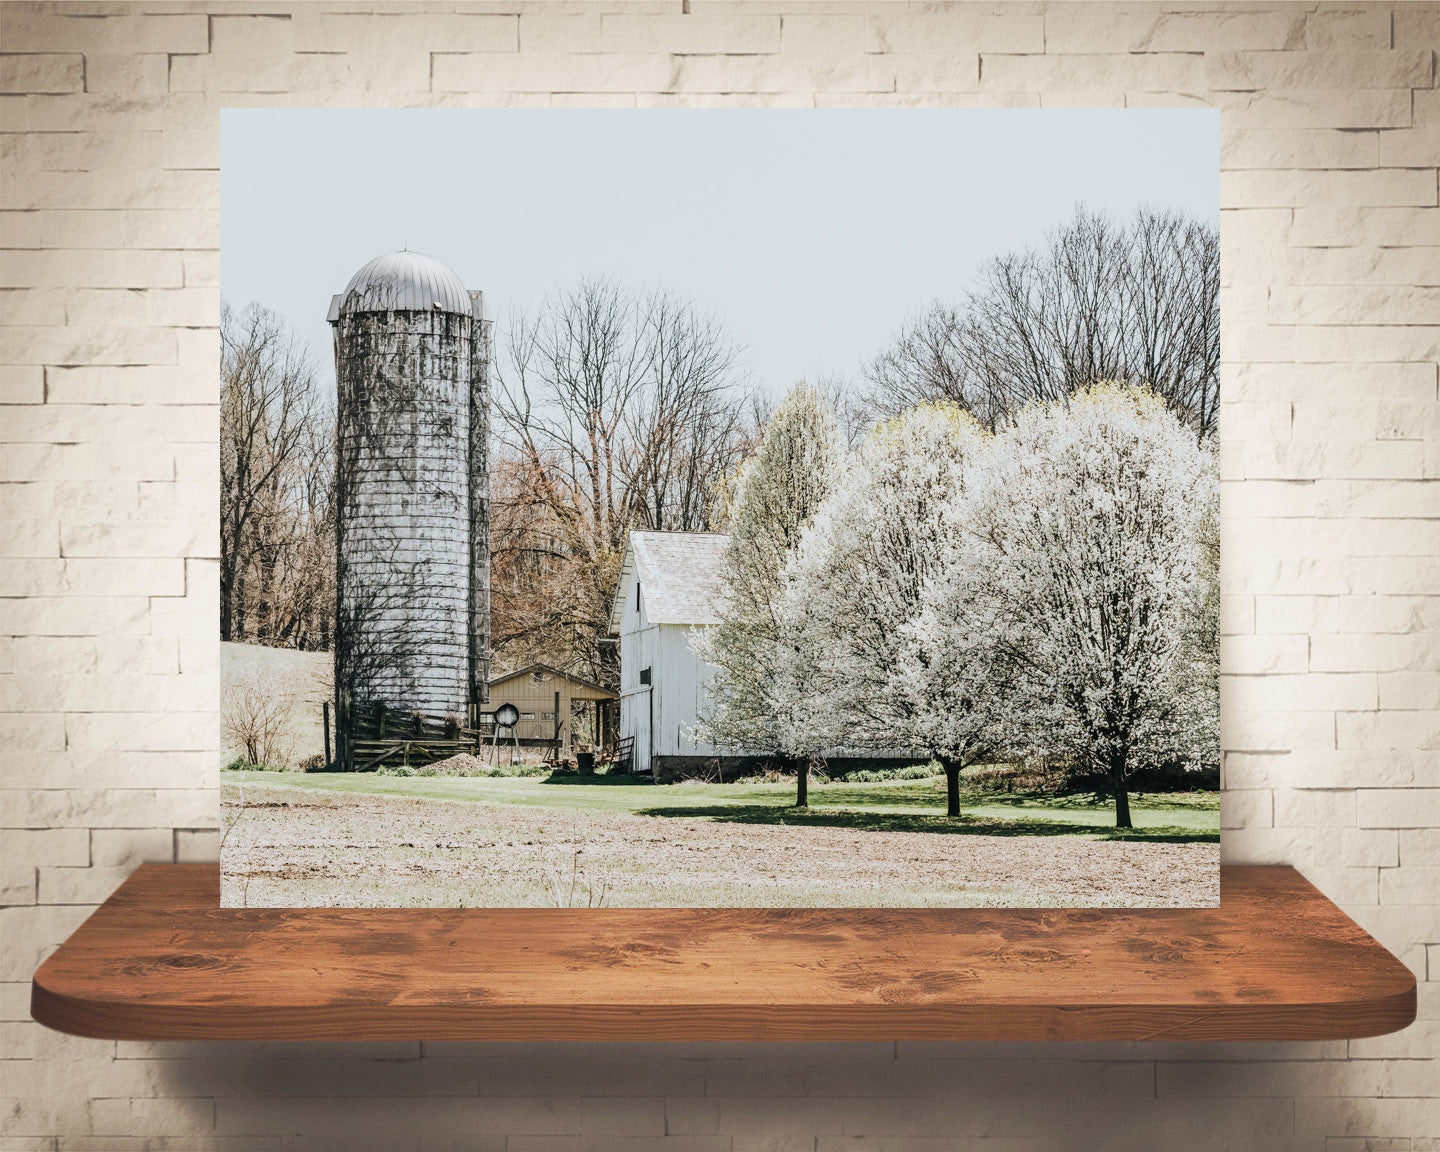 White Barn and Silo Photograph